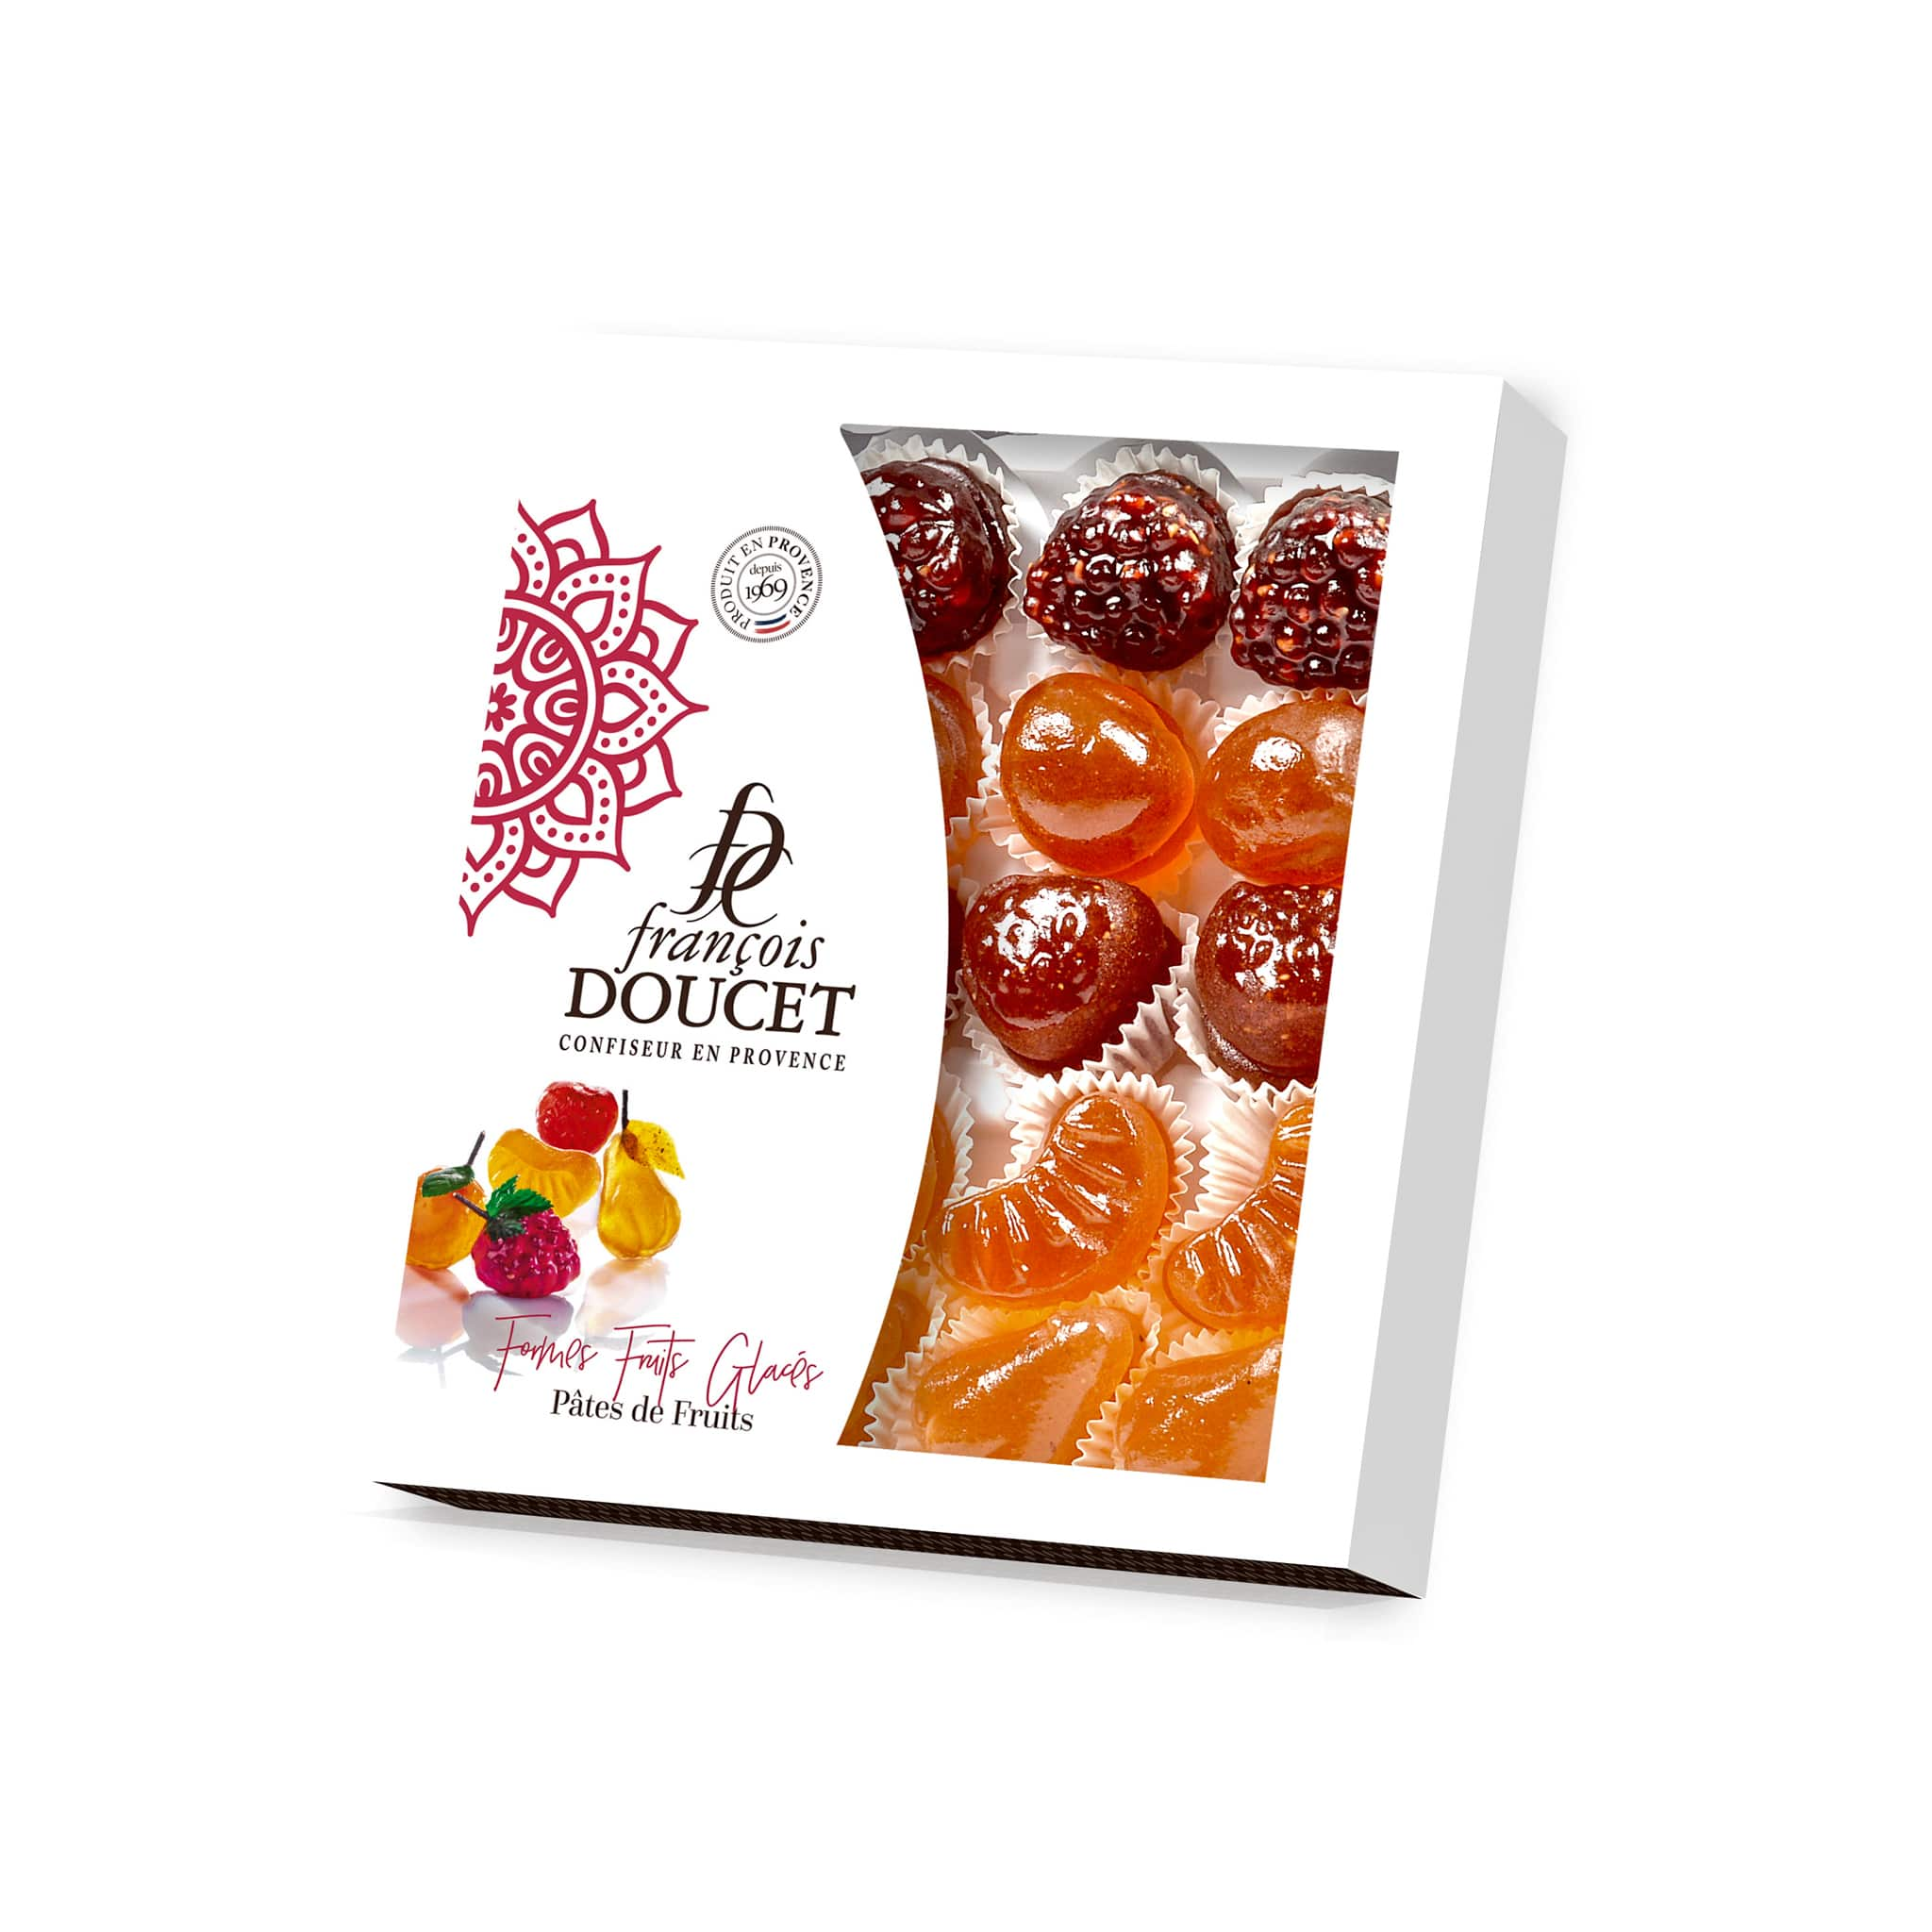 francois doucet glazed fruit jellies box white background